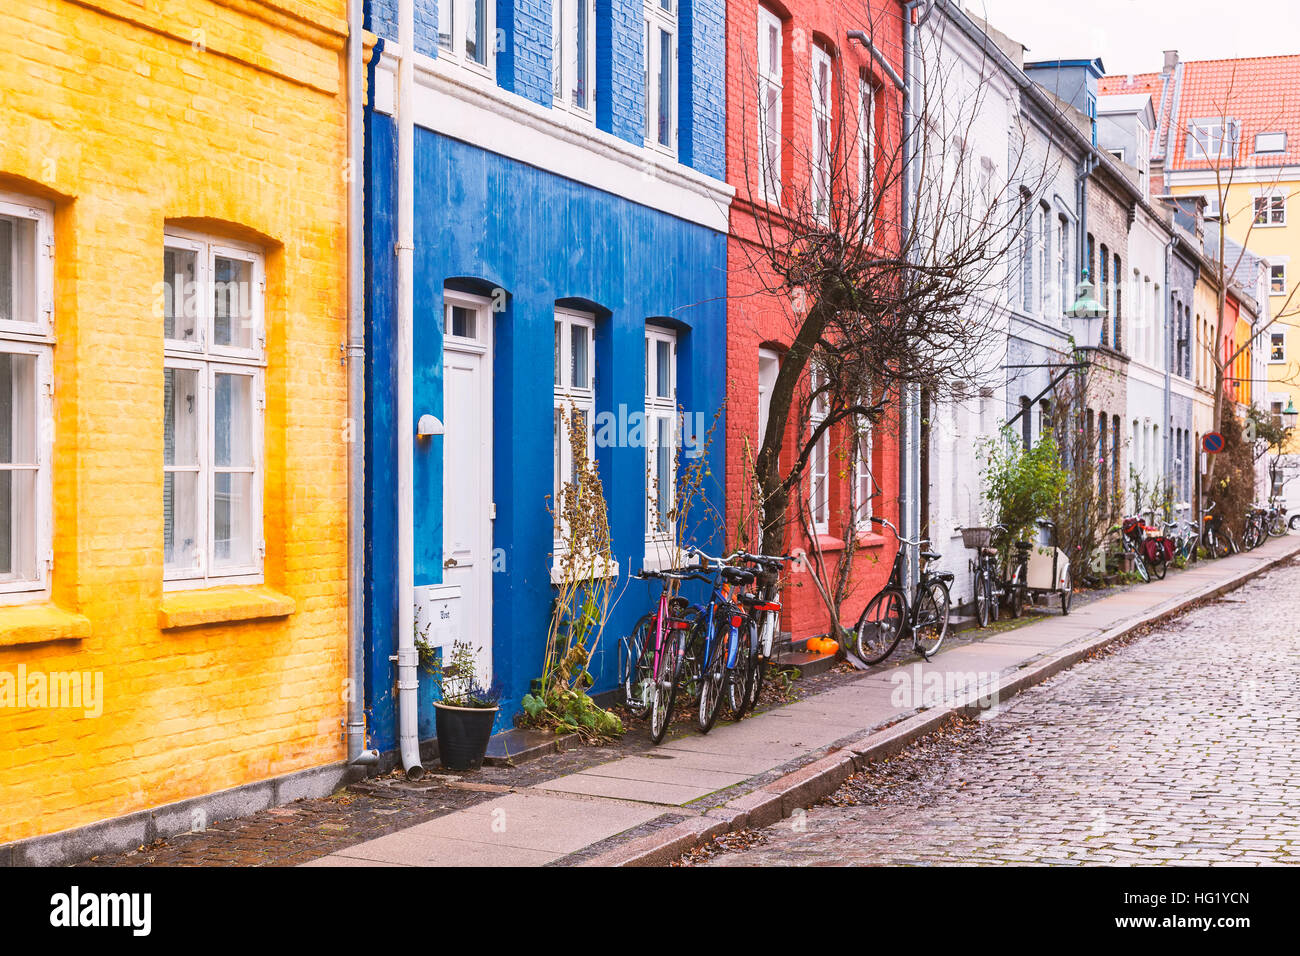 Image of colorful street in Copenhagen, Denmark. - Stock Image